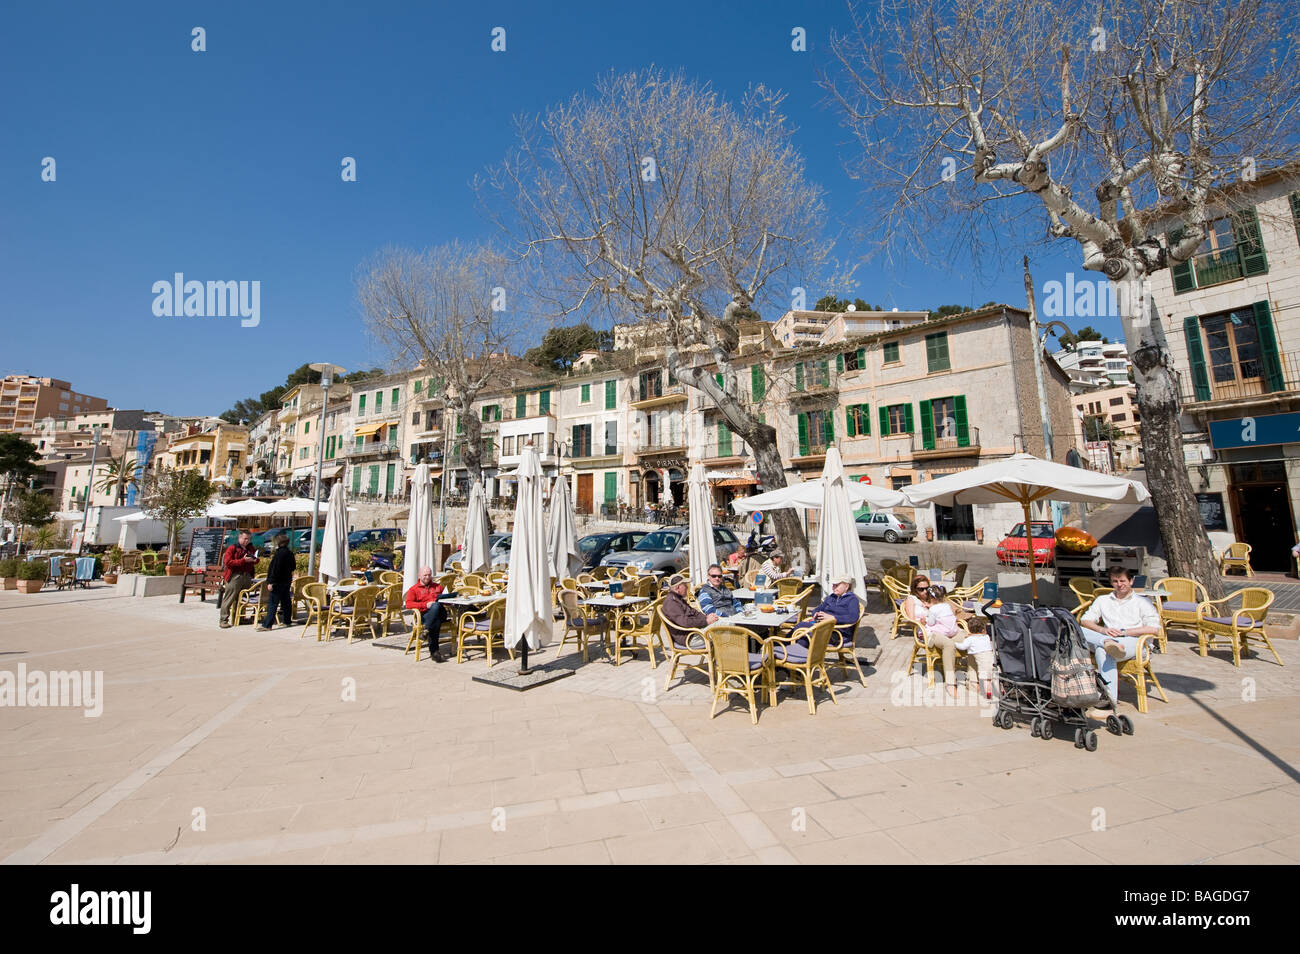 People sitting and eating al fresco in the spanish resort of Stoller Mallorca Spain - Stock Image